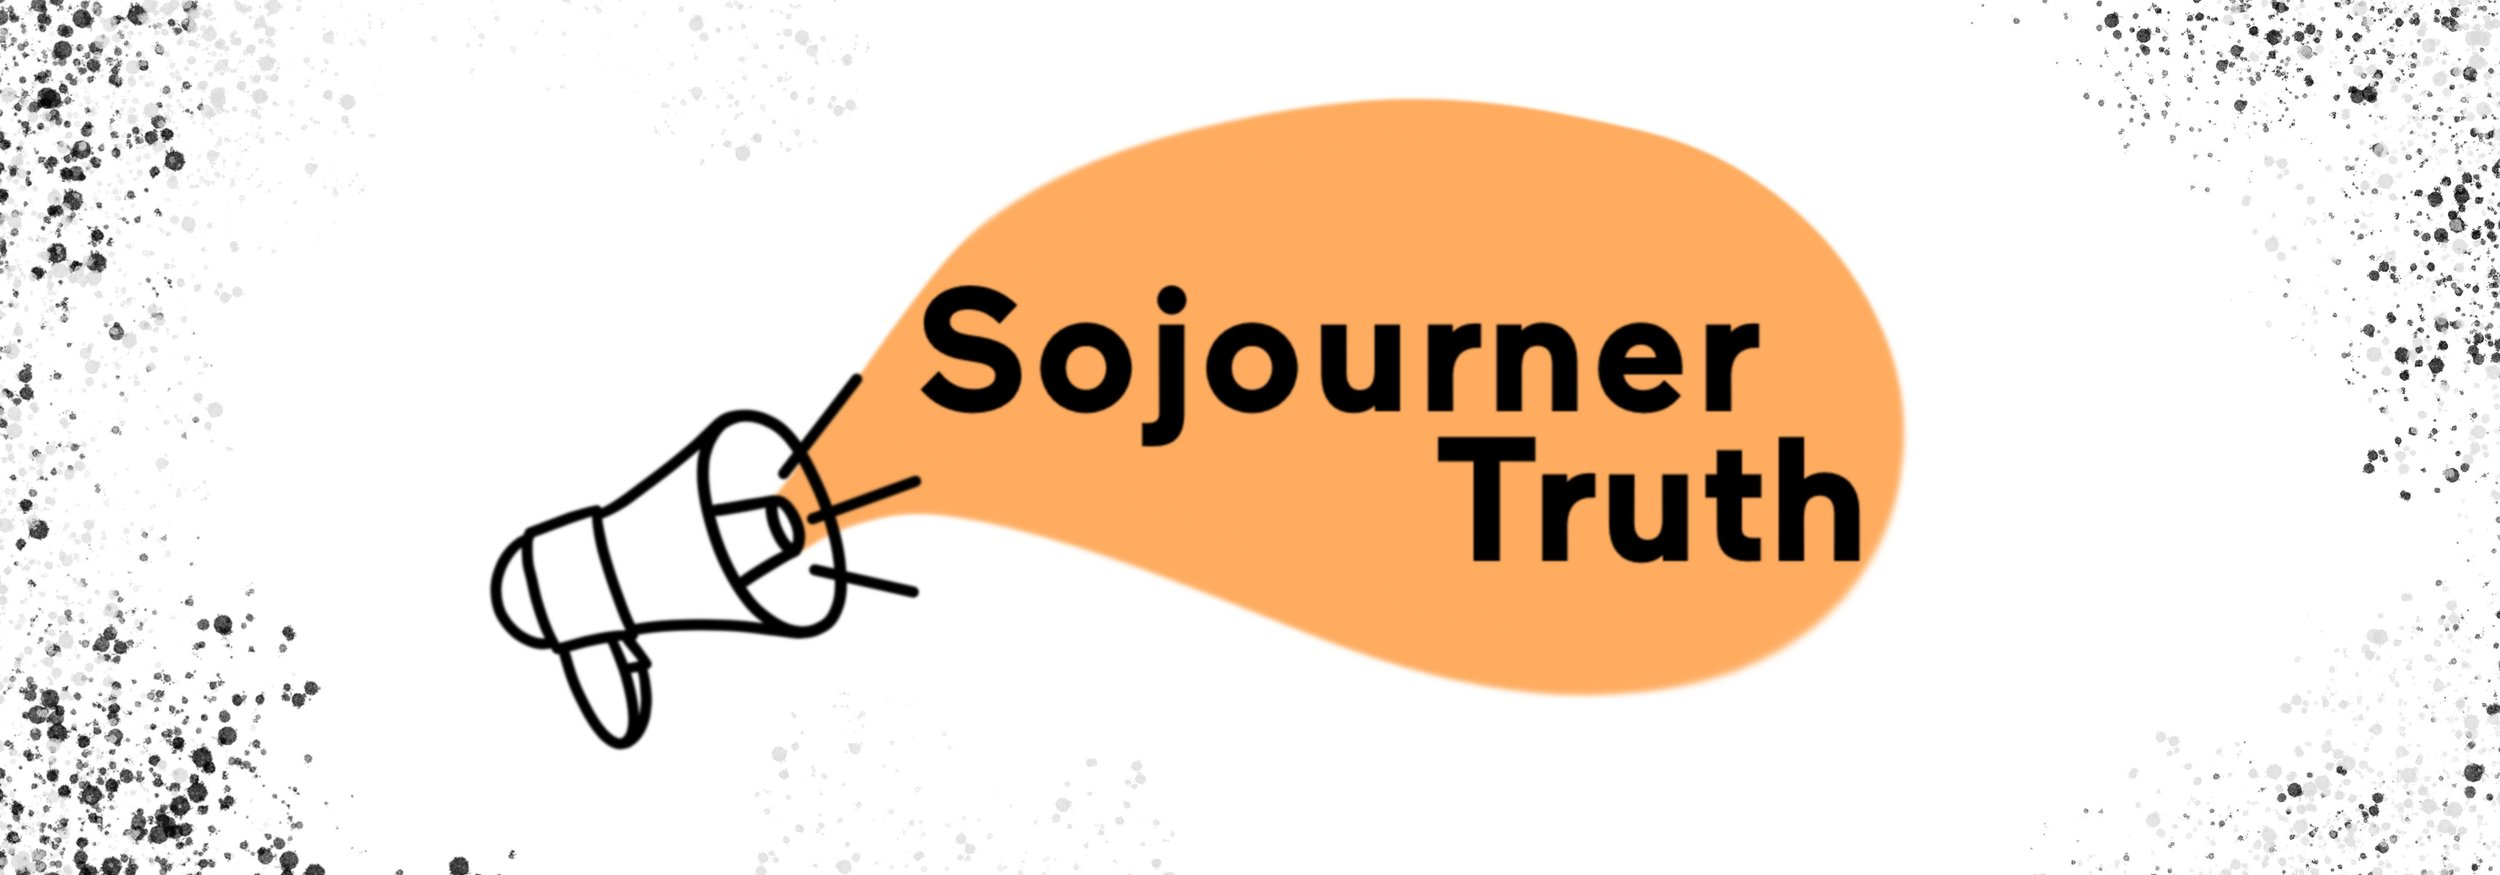 Sojourner_Truth_Website_Banner.jpg